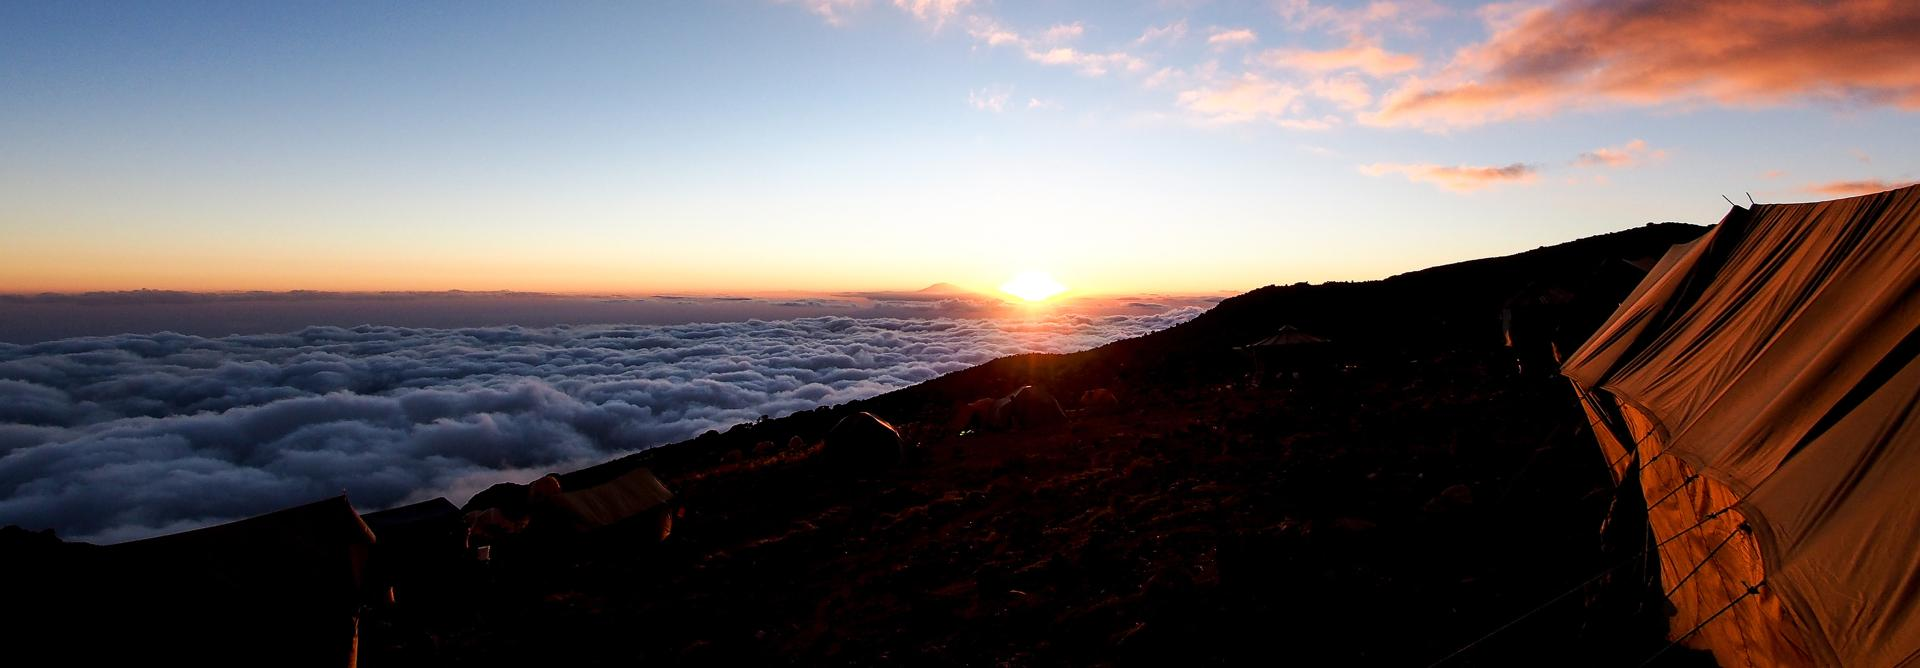 Sunrise from Mt. Kilimanjaro